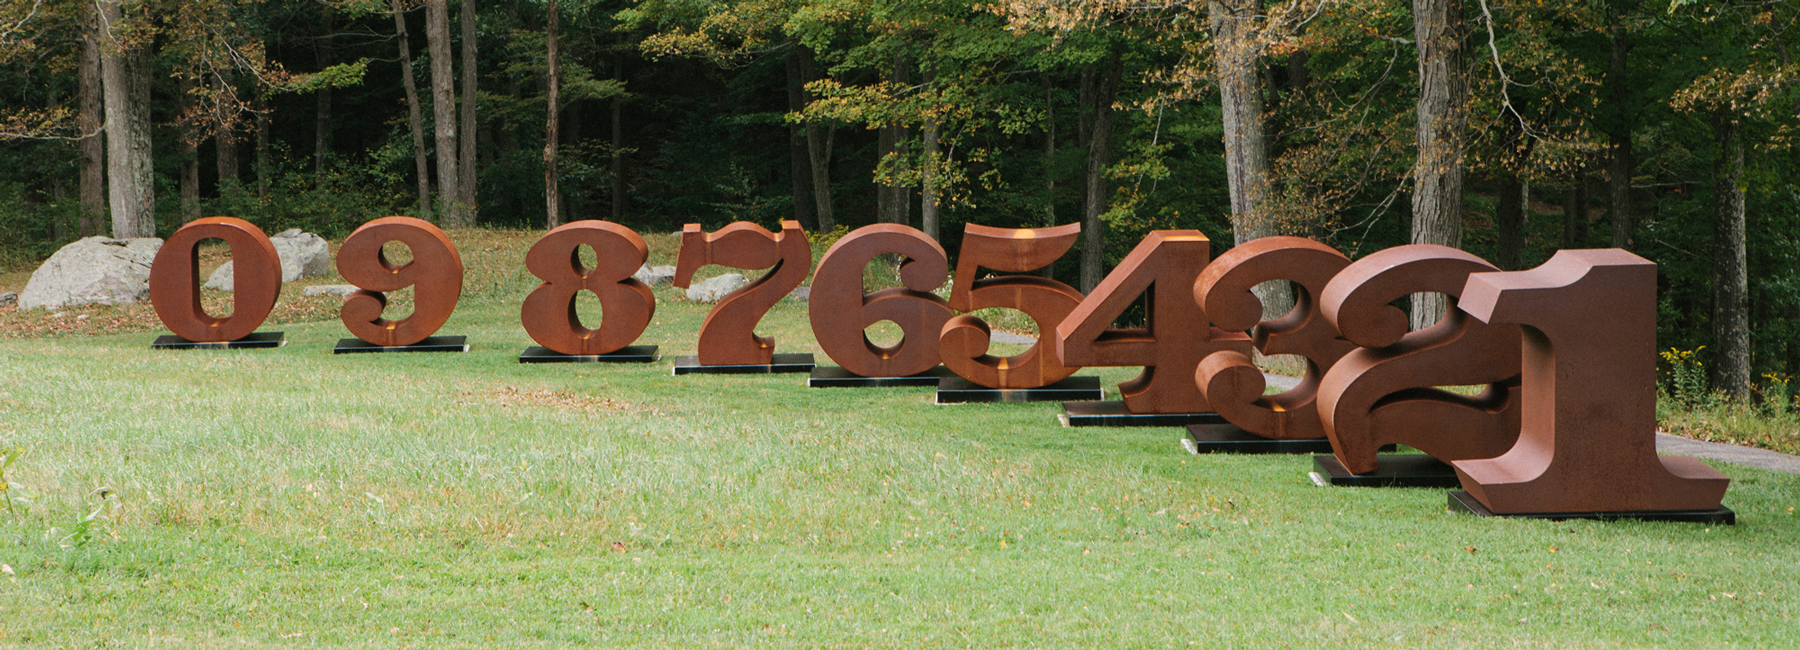 'NUMBERS ONE through ZERO,' a collection of massive steel sculptures by Robert Indiana, will be installed in early June along Buffalo's Outer Harbor.